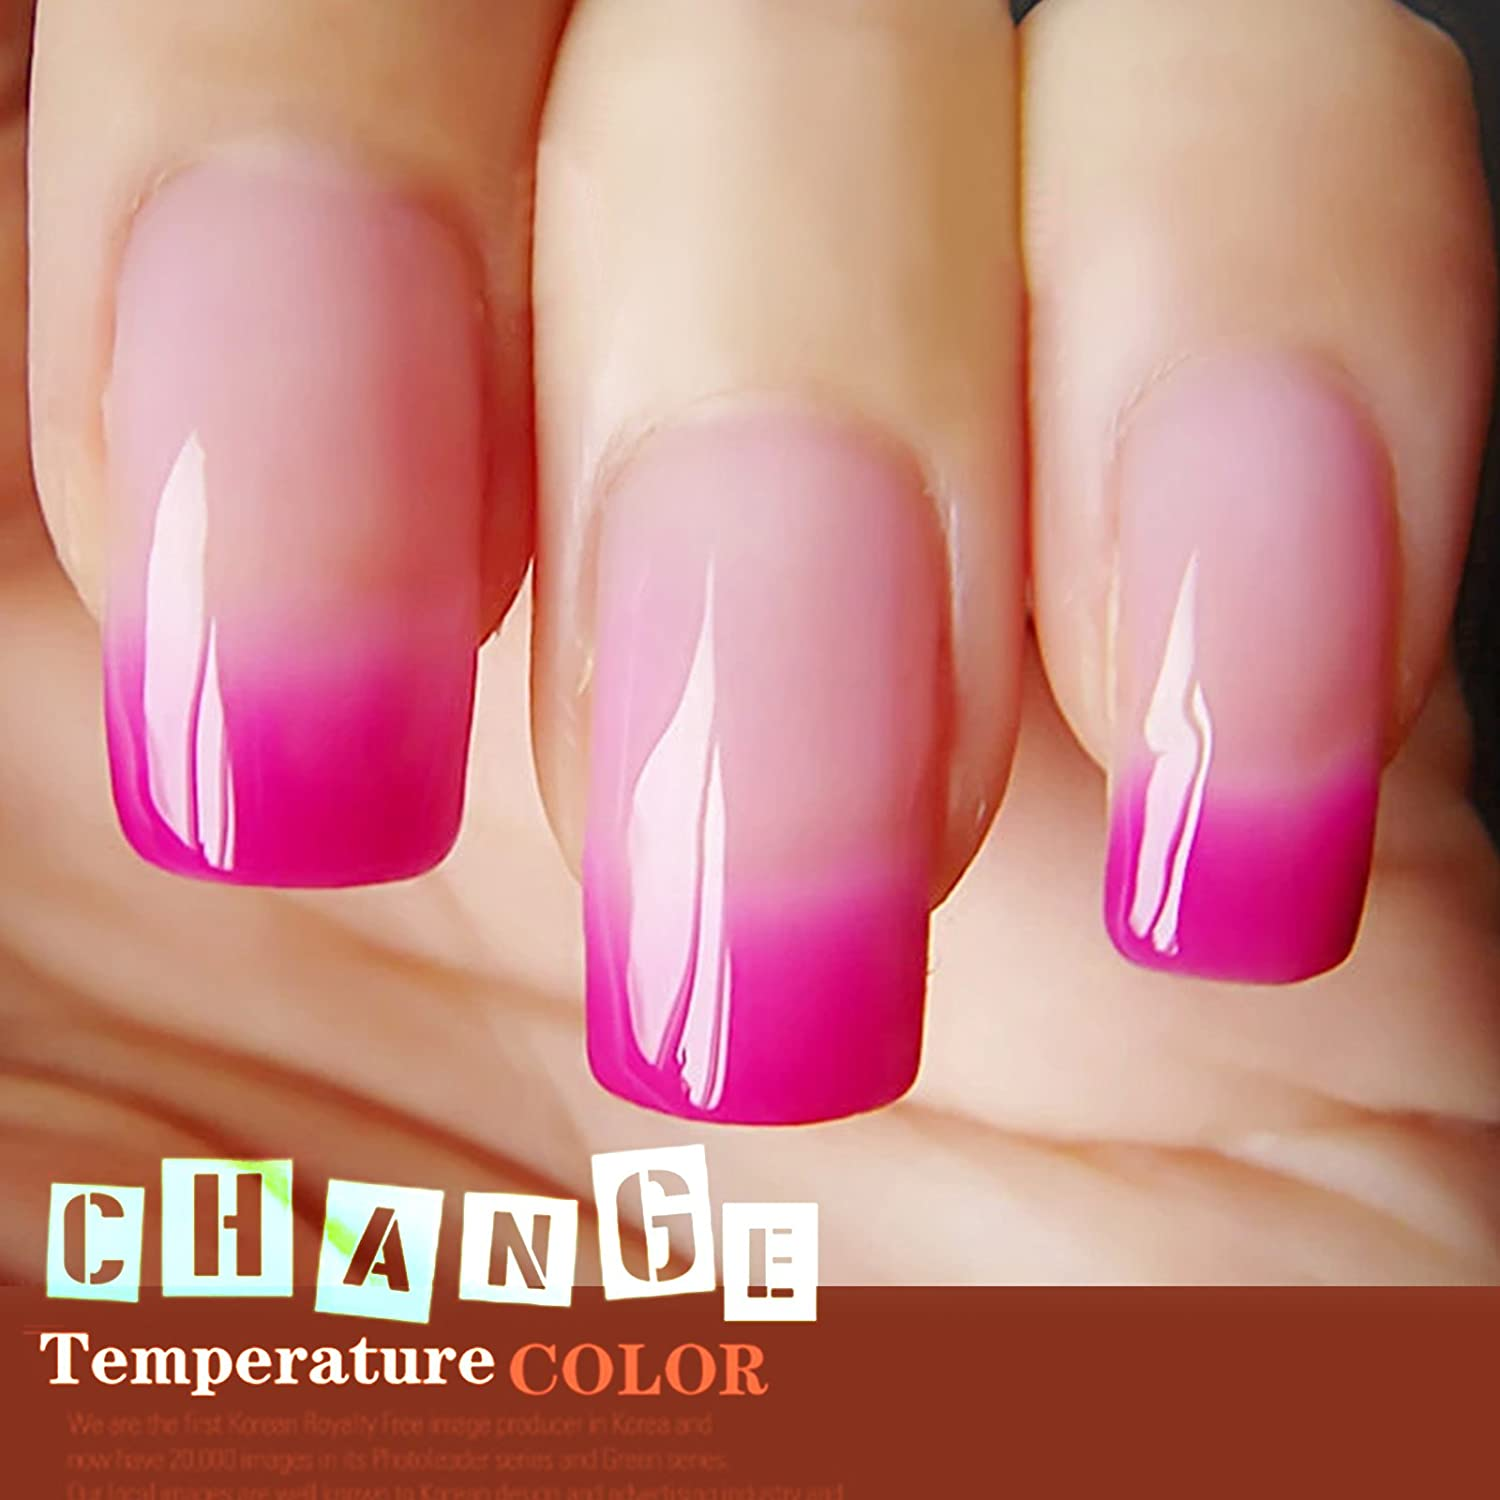 Color change online - Temperature Colors Changing 10ml Gel Nail Polish Uv Led Soak Off Manicure Starter Kits Pick Any 30pcs Then Email Us Beauty